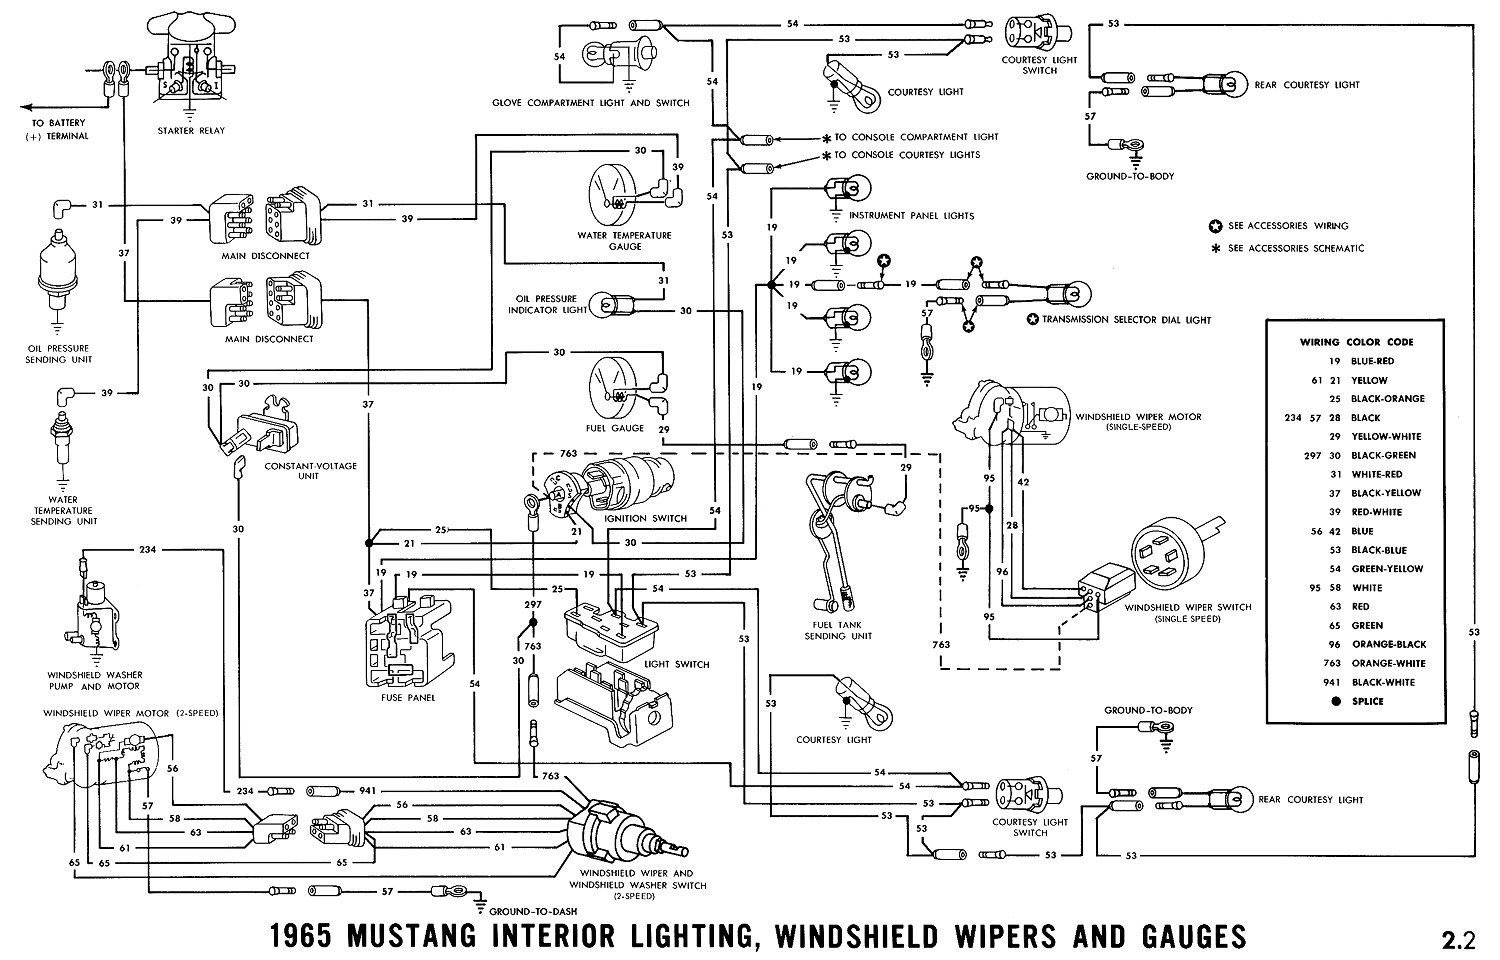 1965g 1965 mustang wiring diagrams average joe restoration 1966 mustang fog light wiring diagram at bakdesigns.co